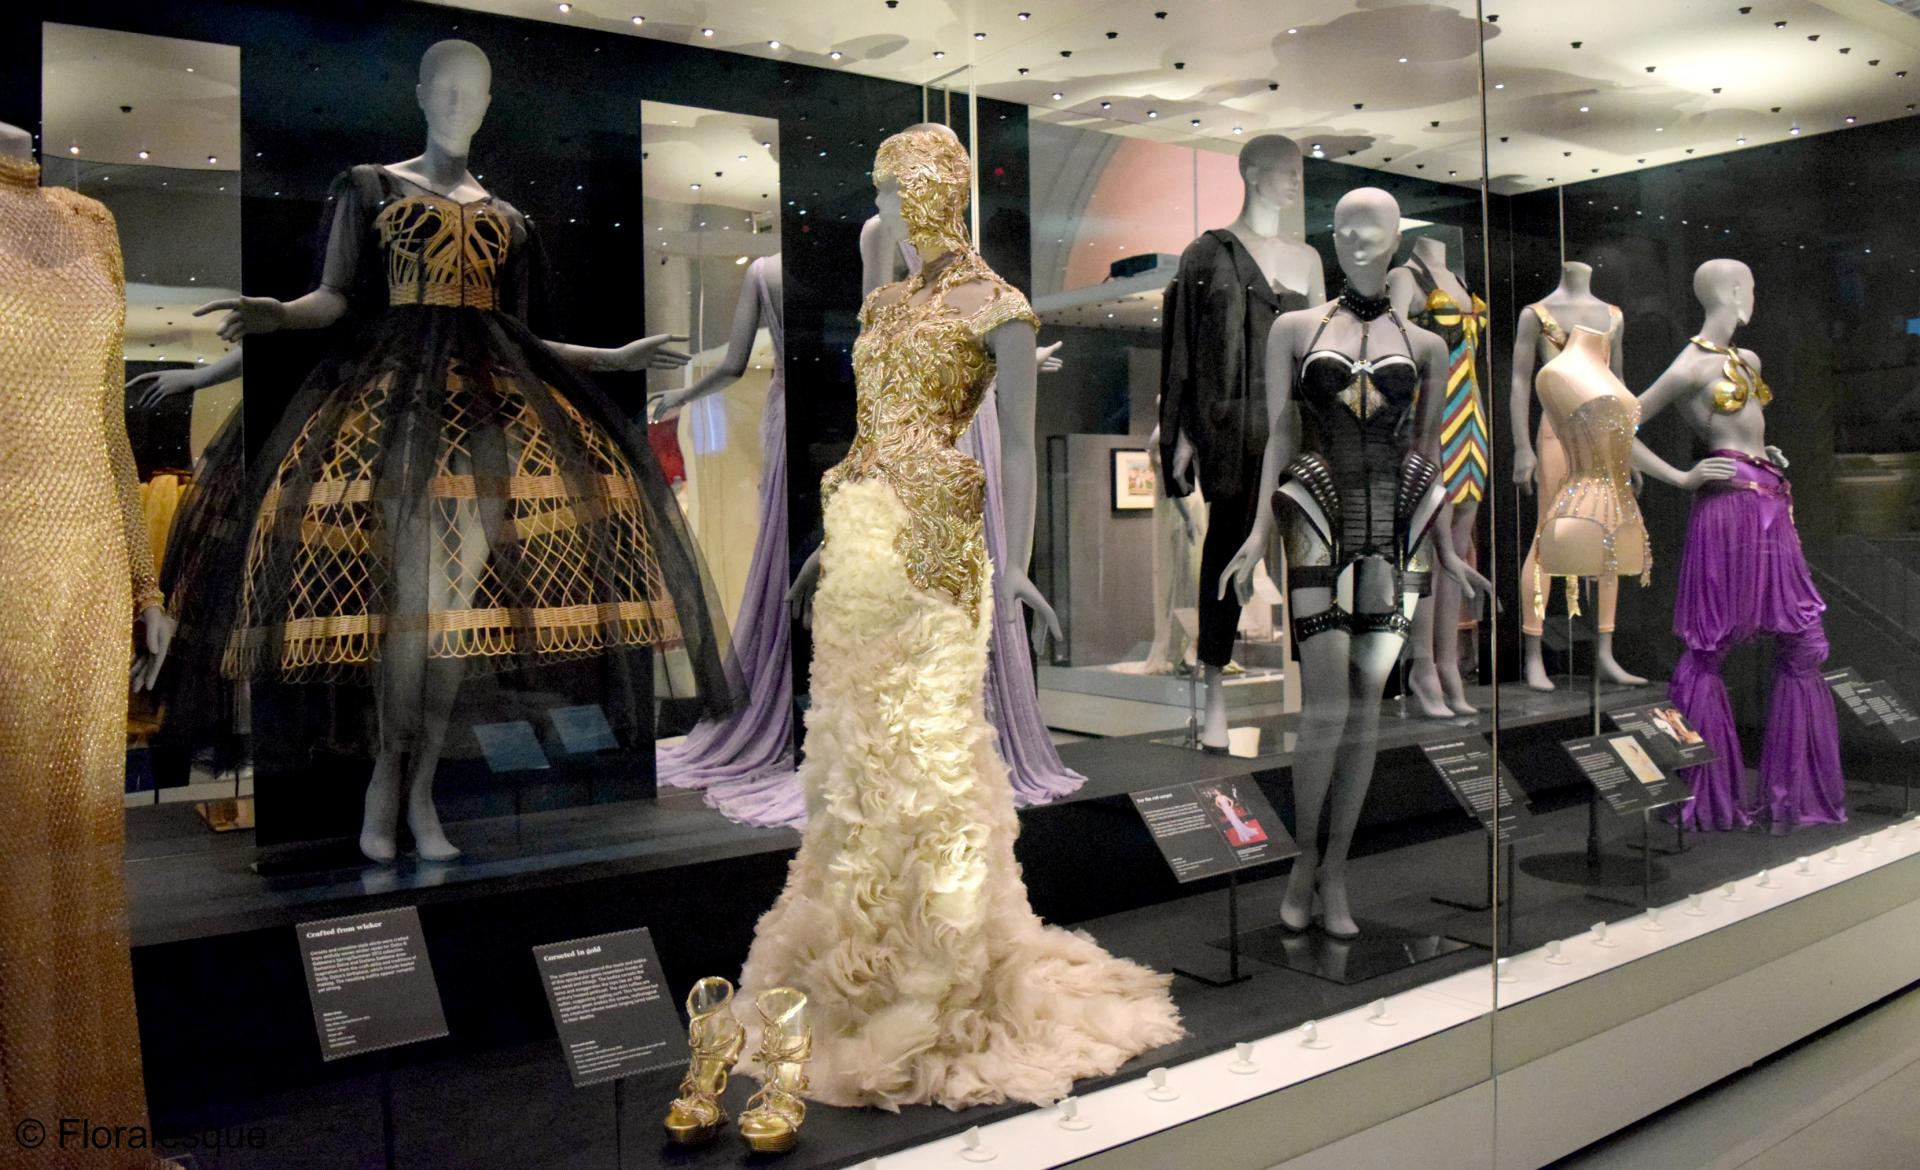 Undressed A Brief History of Underwear Exhibit Review Floralesque 1